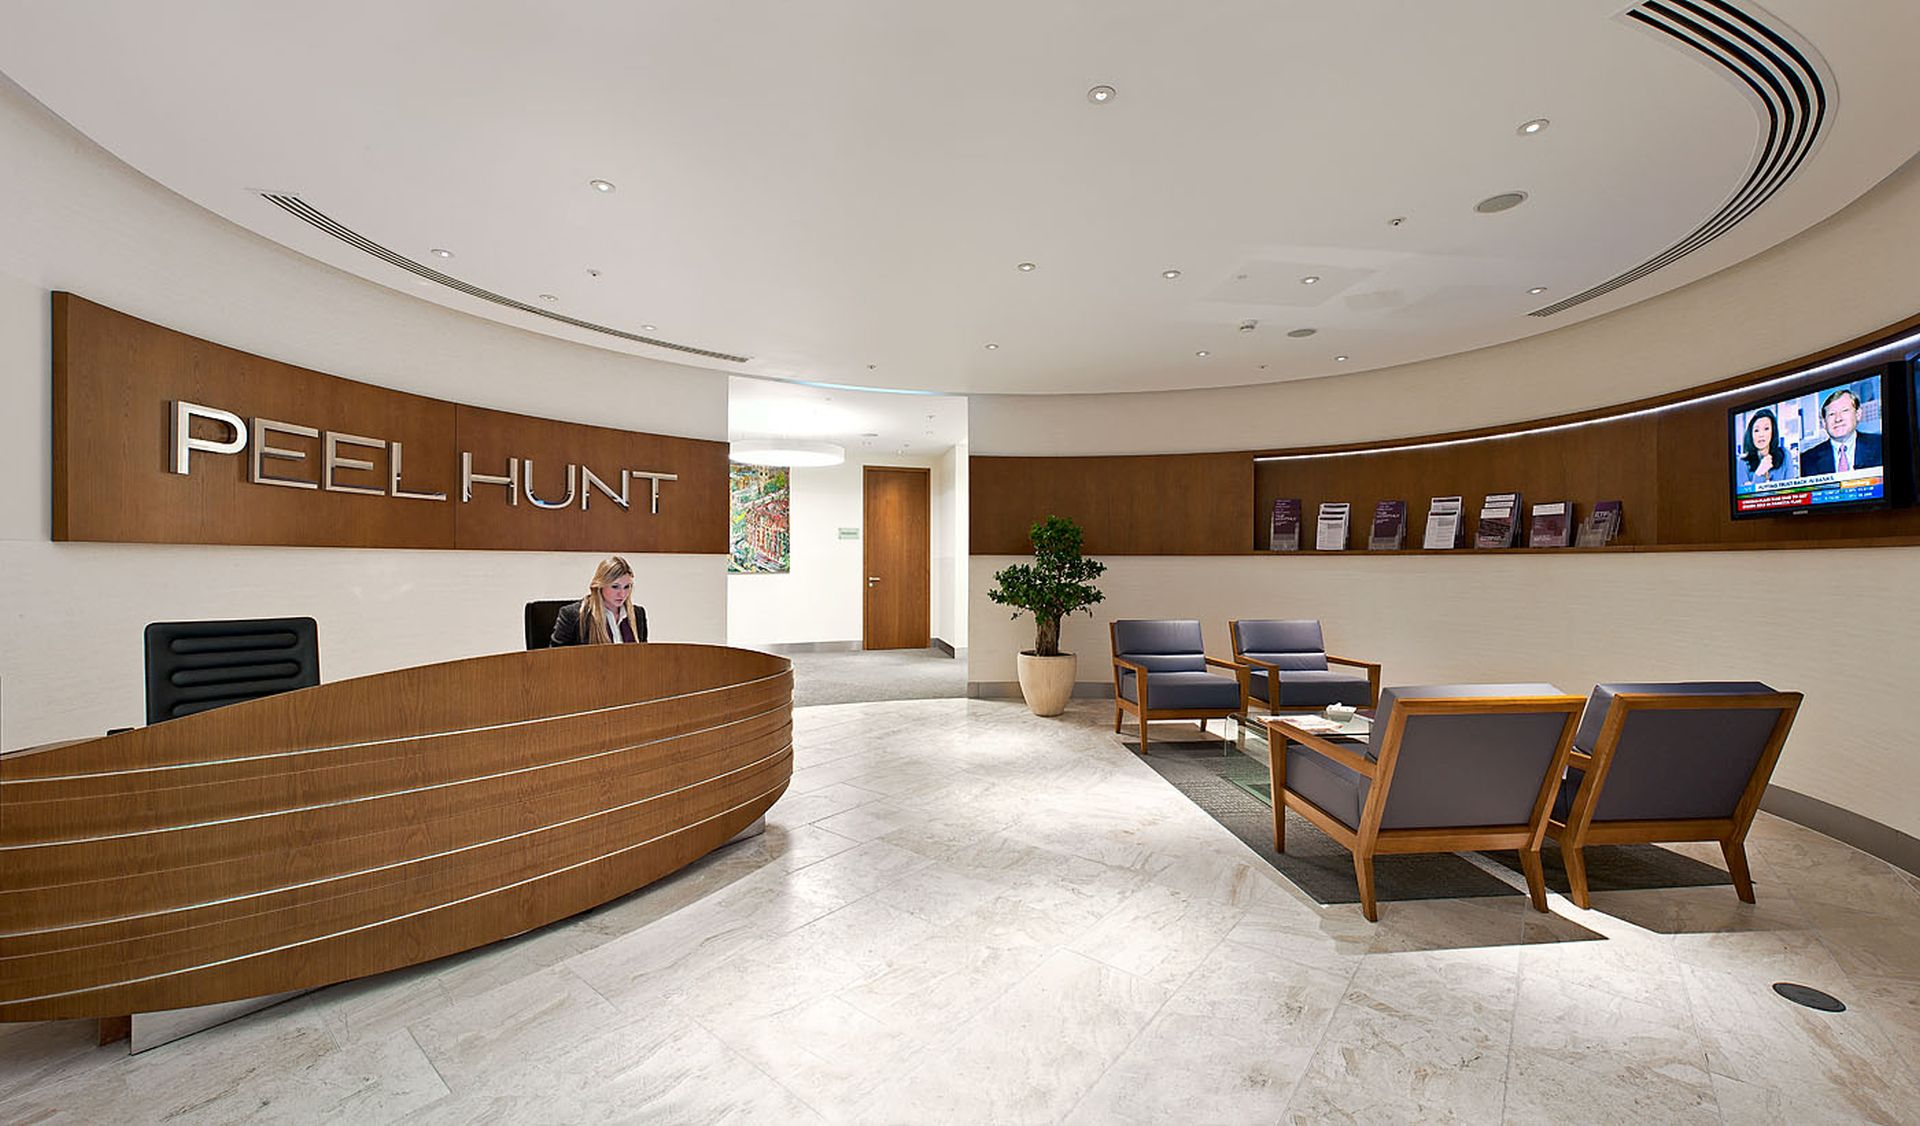 Peel Hunt Case Study Image